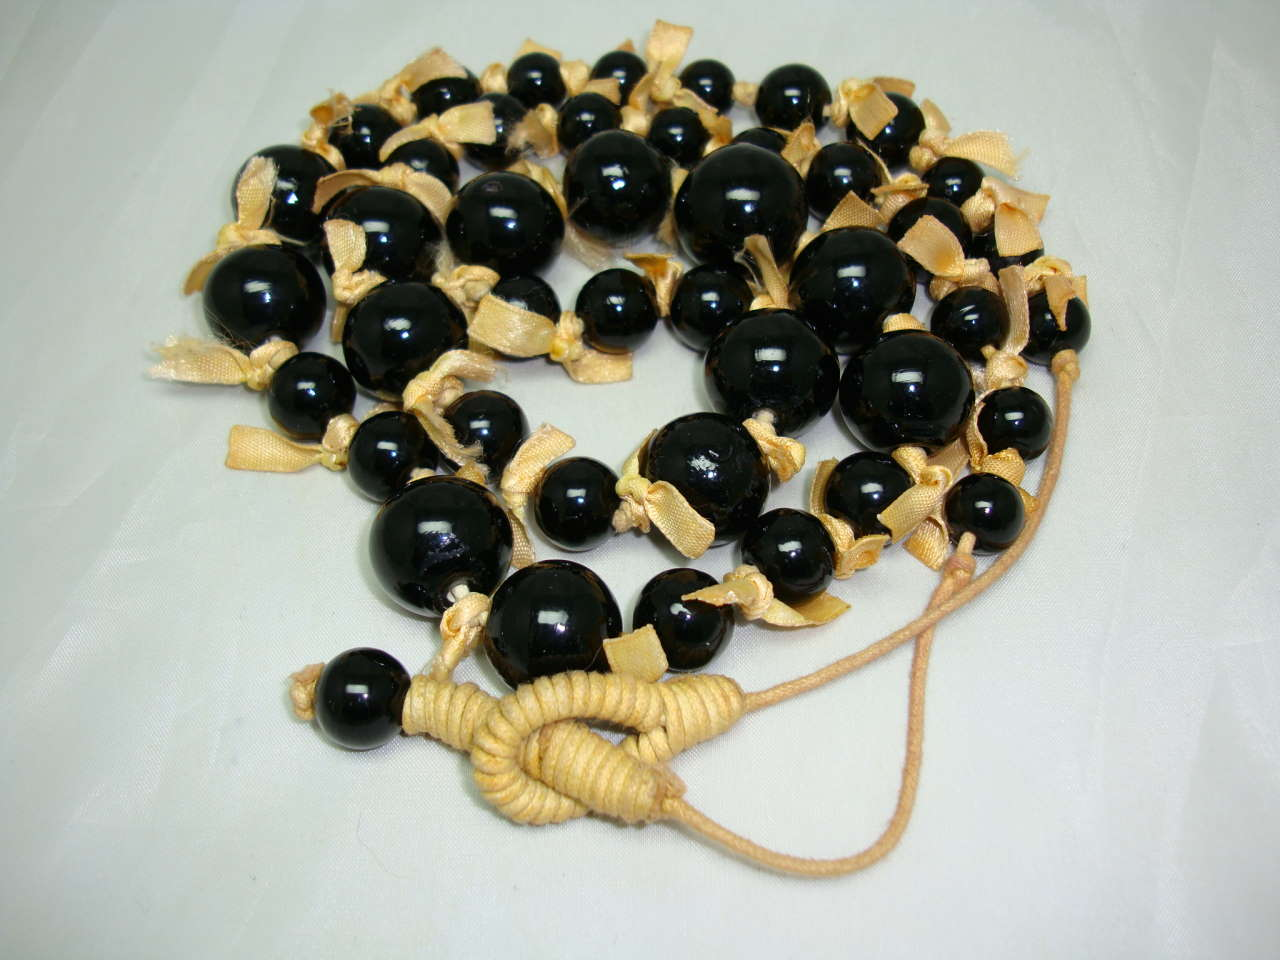 1970s Style Long Black Glass Bead Necklace with Bows!